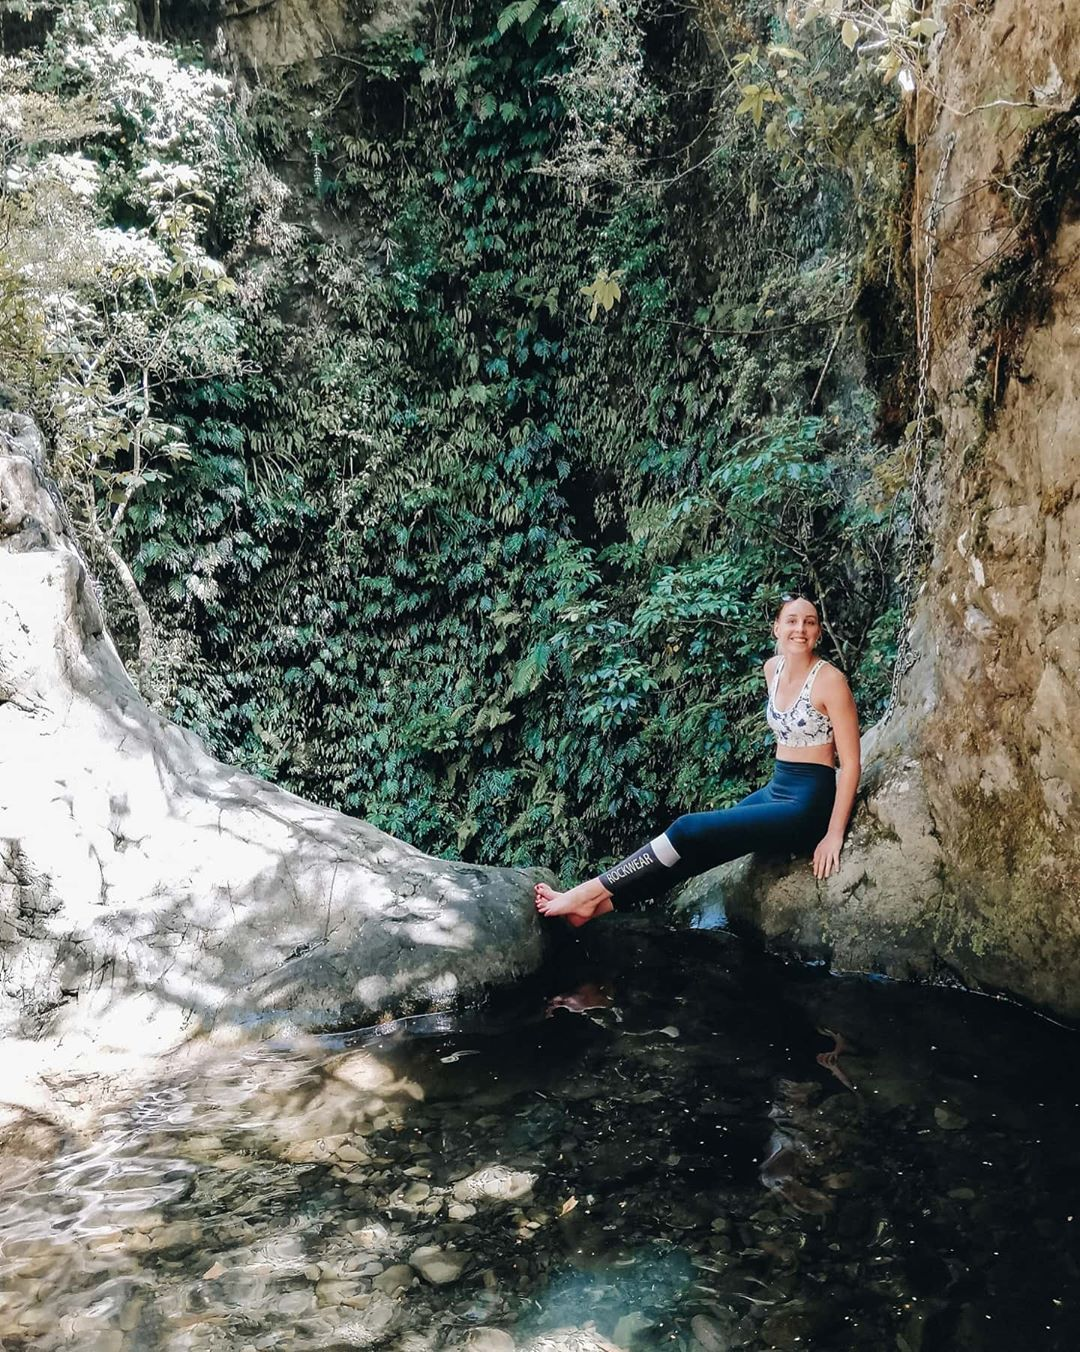 Went chasing a waterfall this morning and found a magical little pool right at the top 💙 Swipe for m...